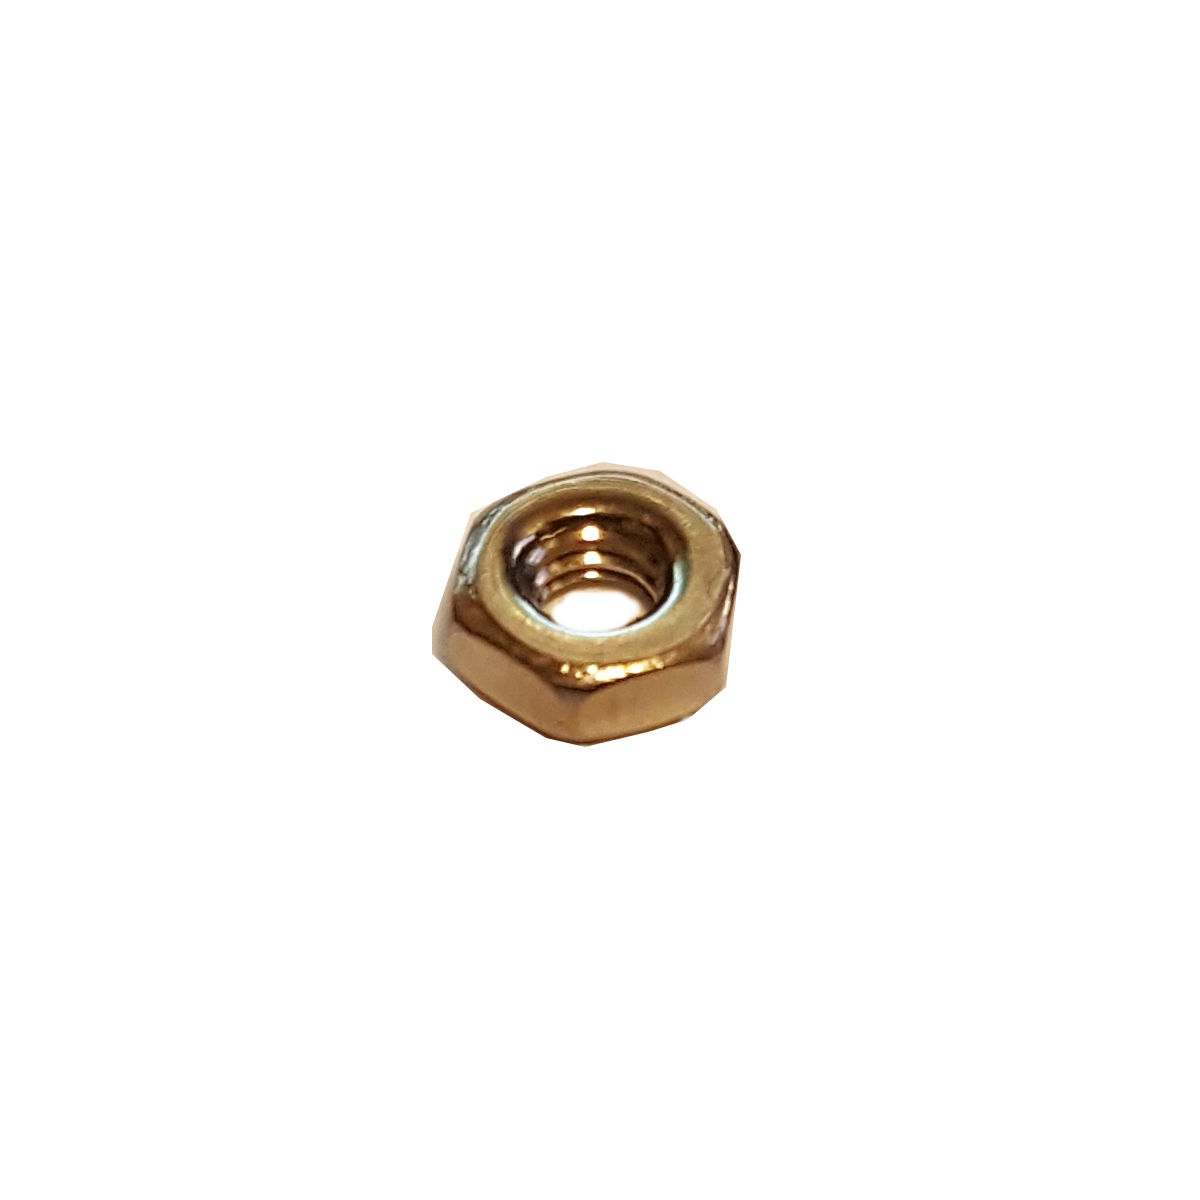 M2 Hex Nut - Stainless Steel - 3D Printing Canada